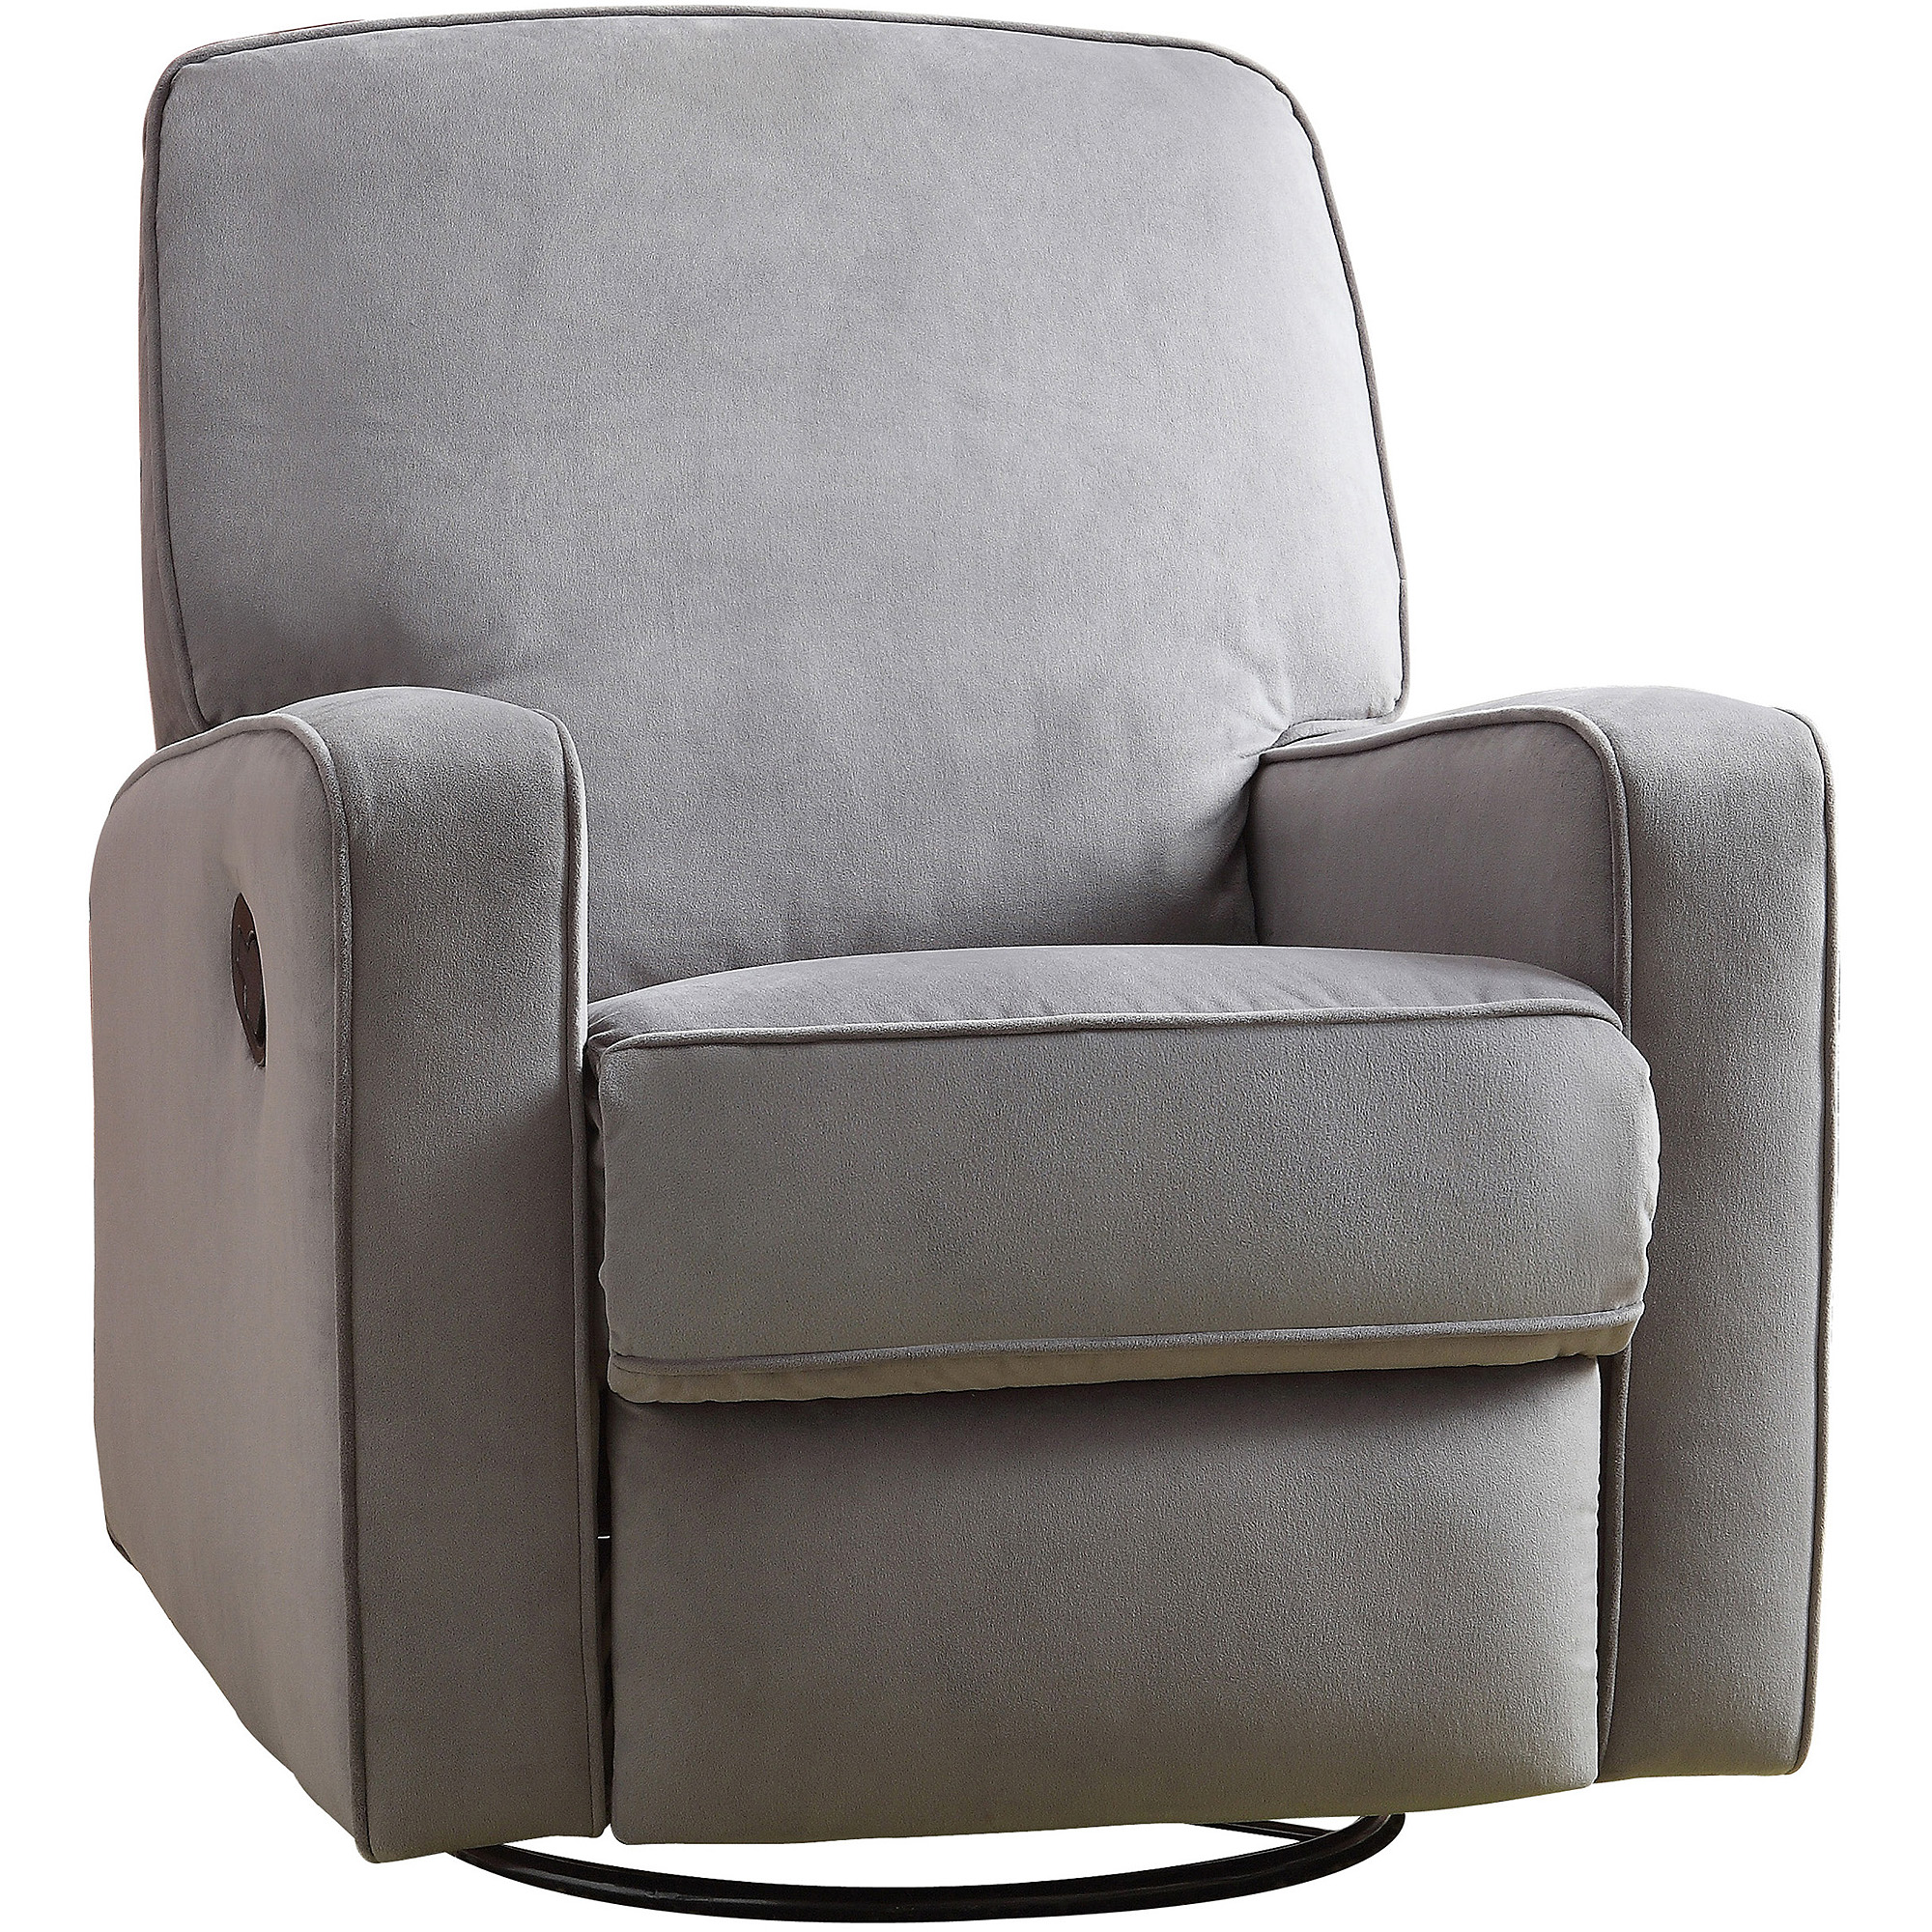 Home Meridian International Sutton Swivel Glider Recliner Stella Zen, Gray by Pri